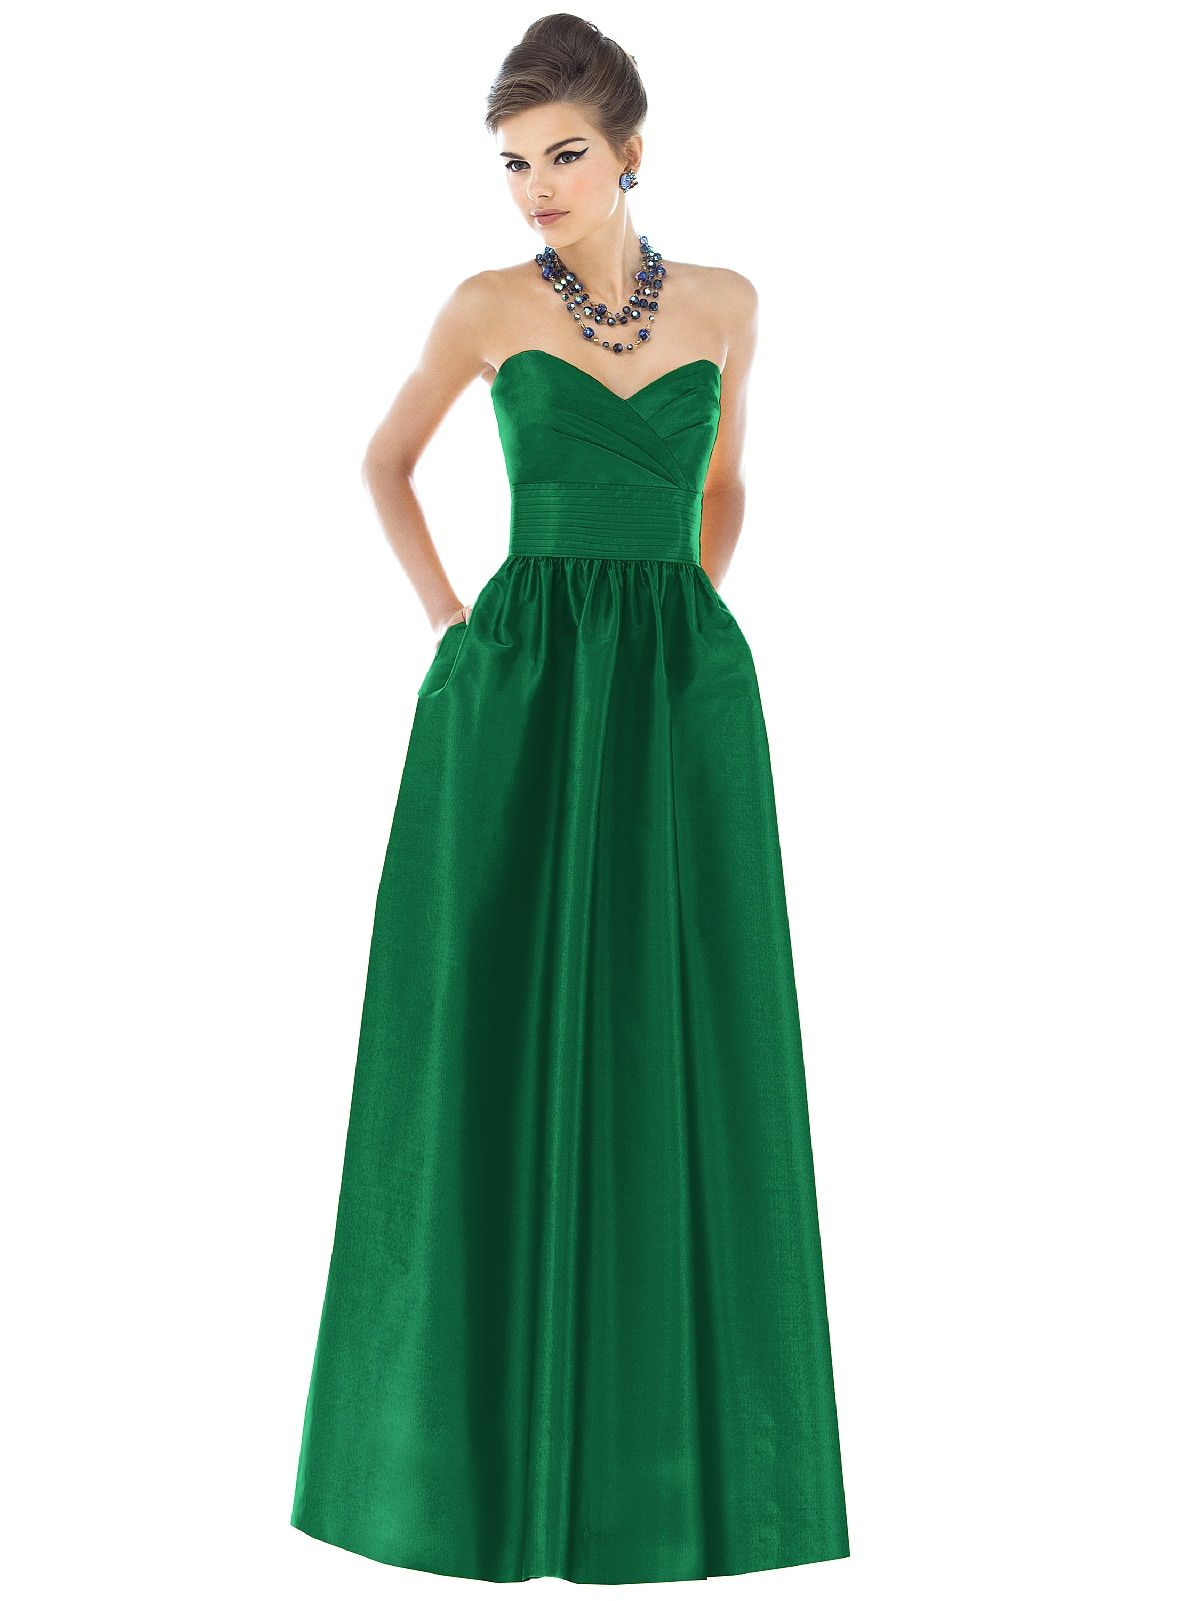 Gorgeous gown outfits pinterest gowns prom and emerald green